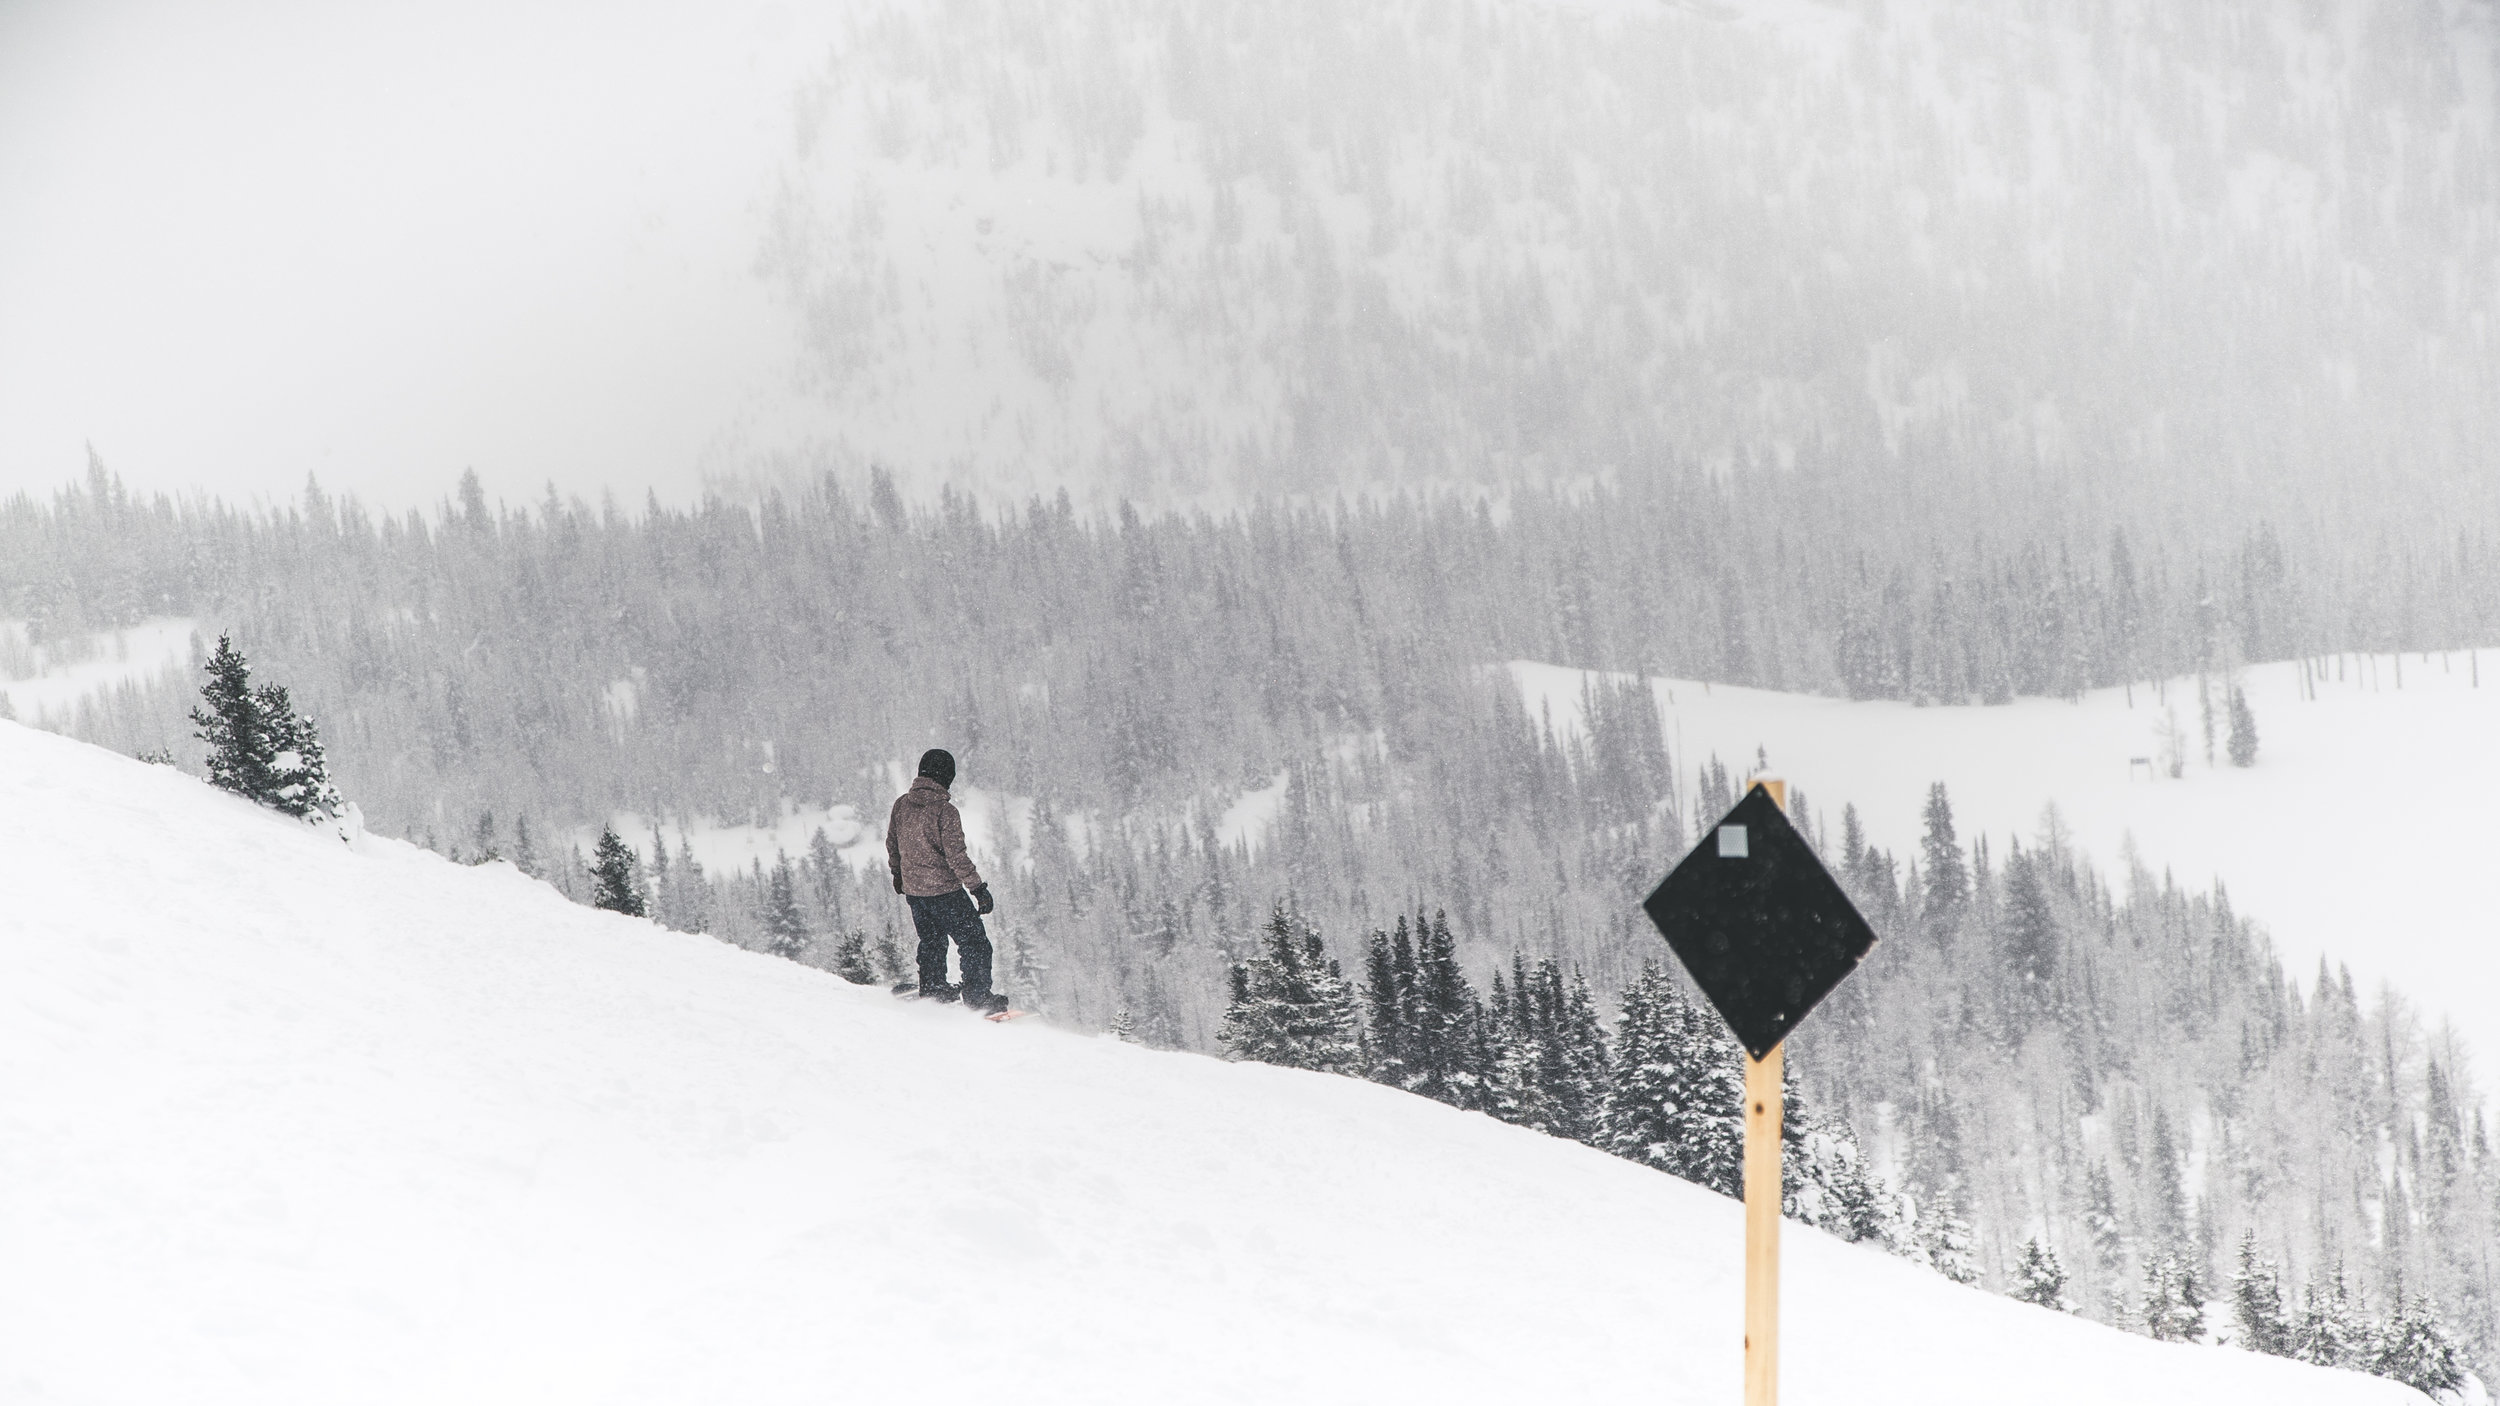 Sixth set - powder day and some Banff town-6.jpg